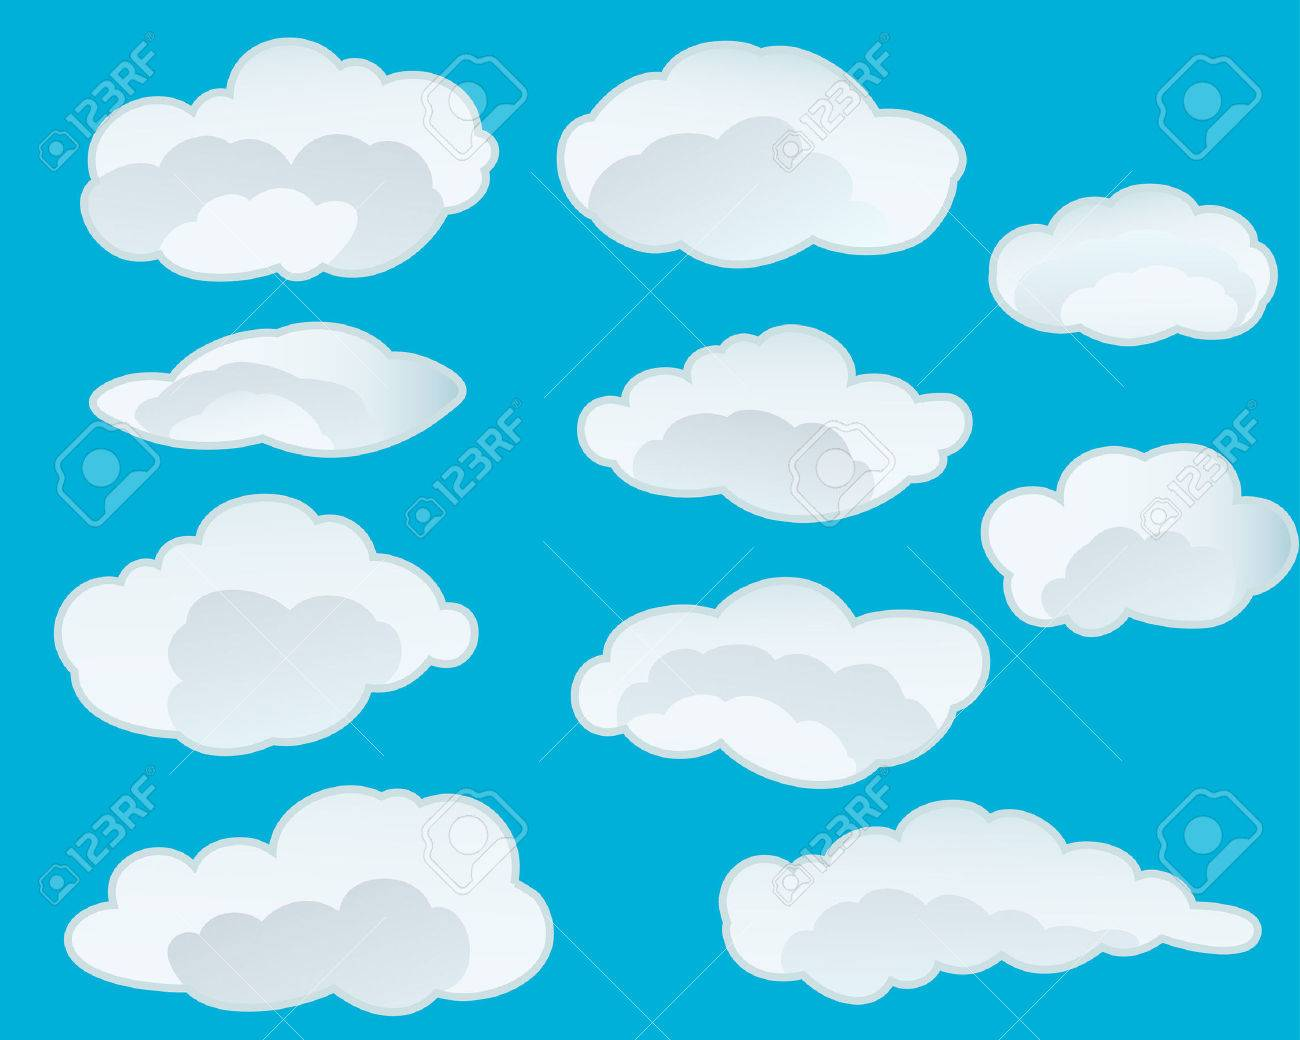 Set of vector clouds background for design use Stock Vector - 5021478